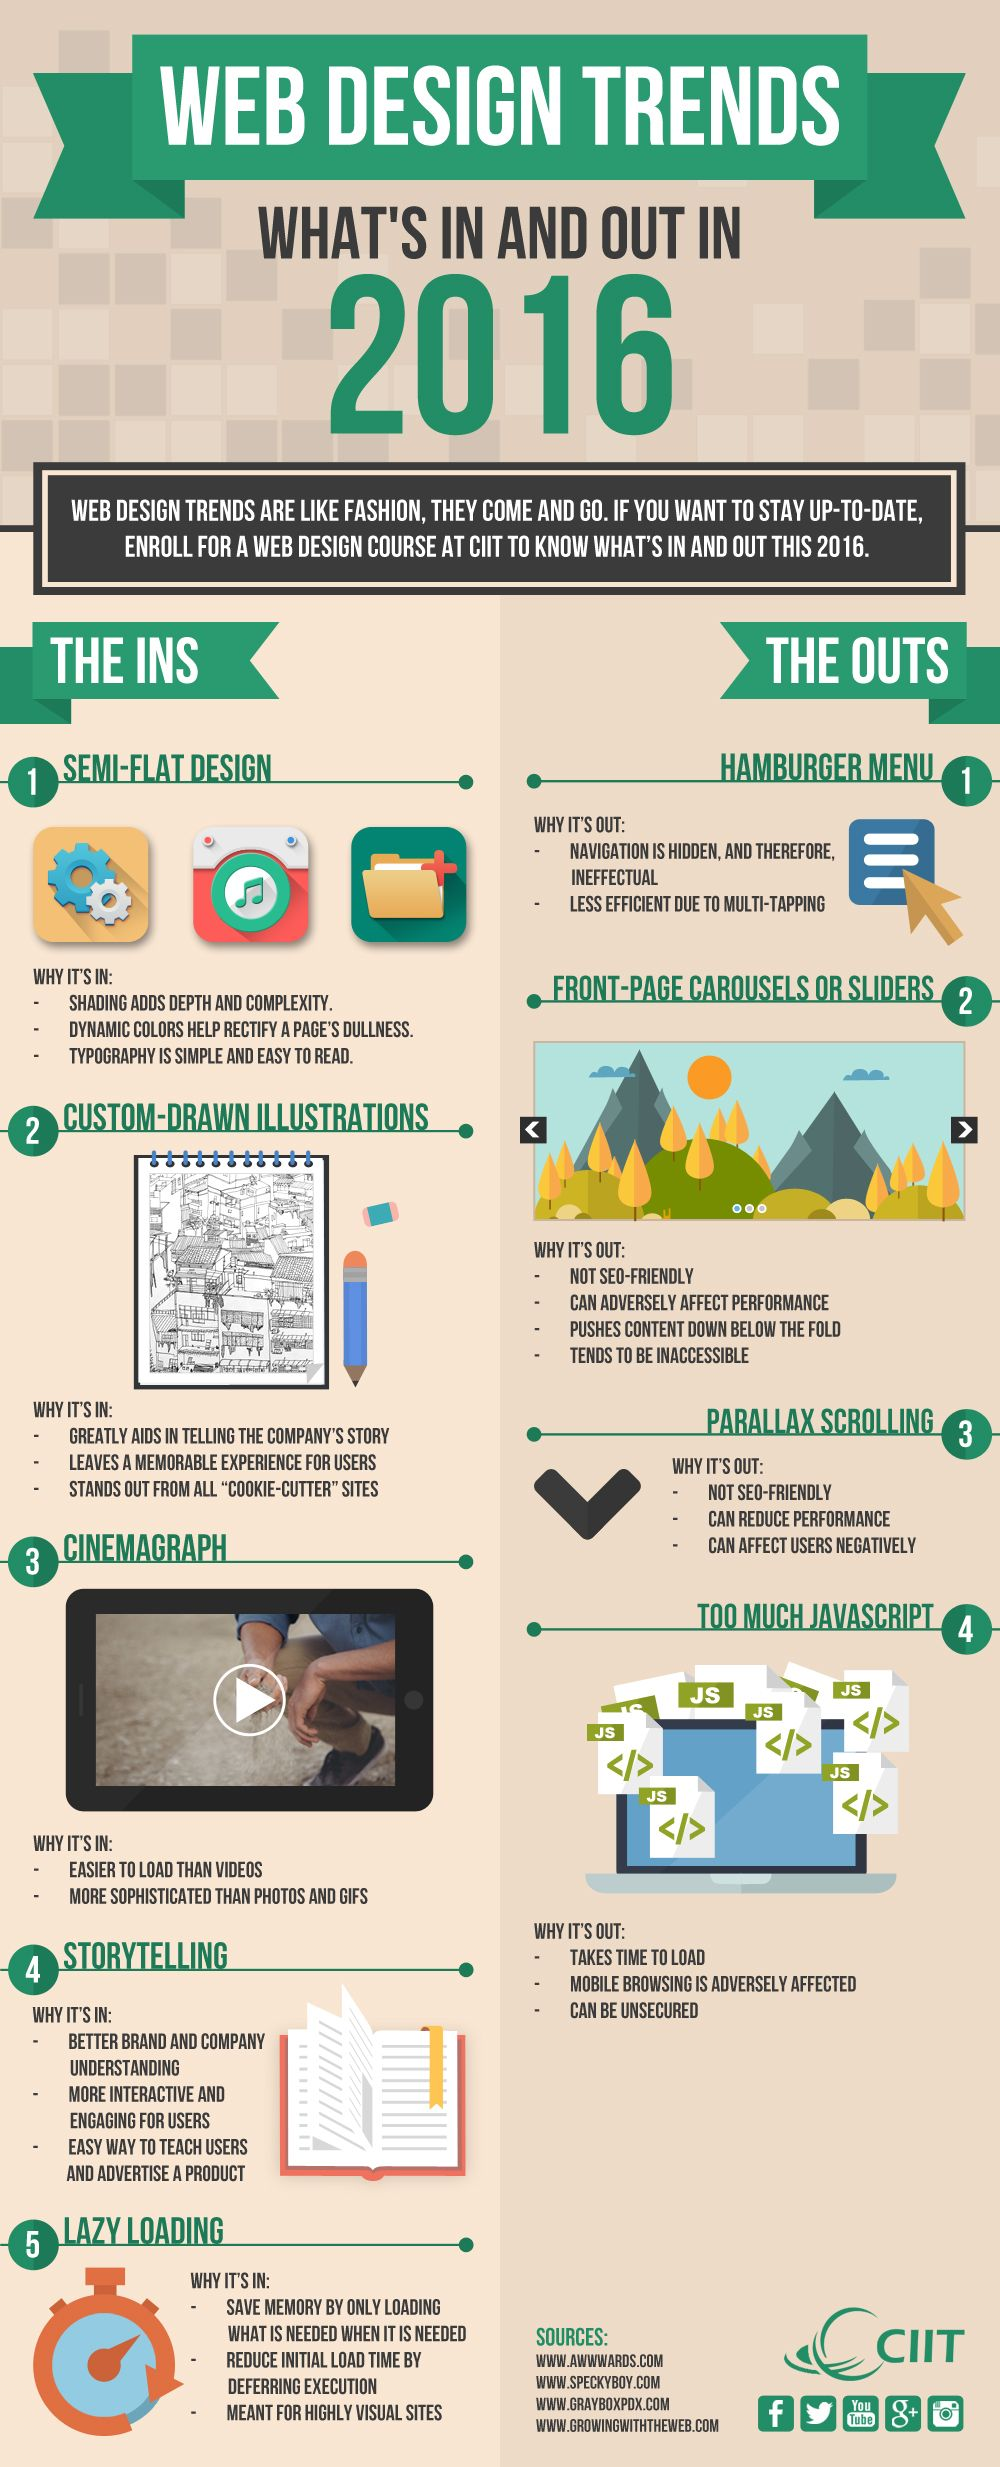 Web Design Trends Whats In And Out 2016